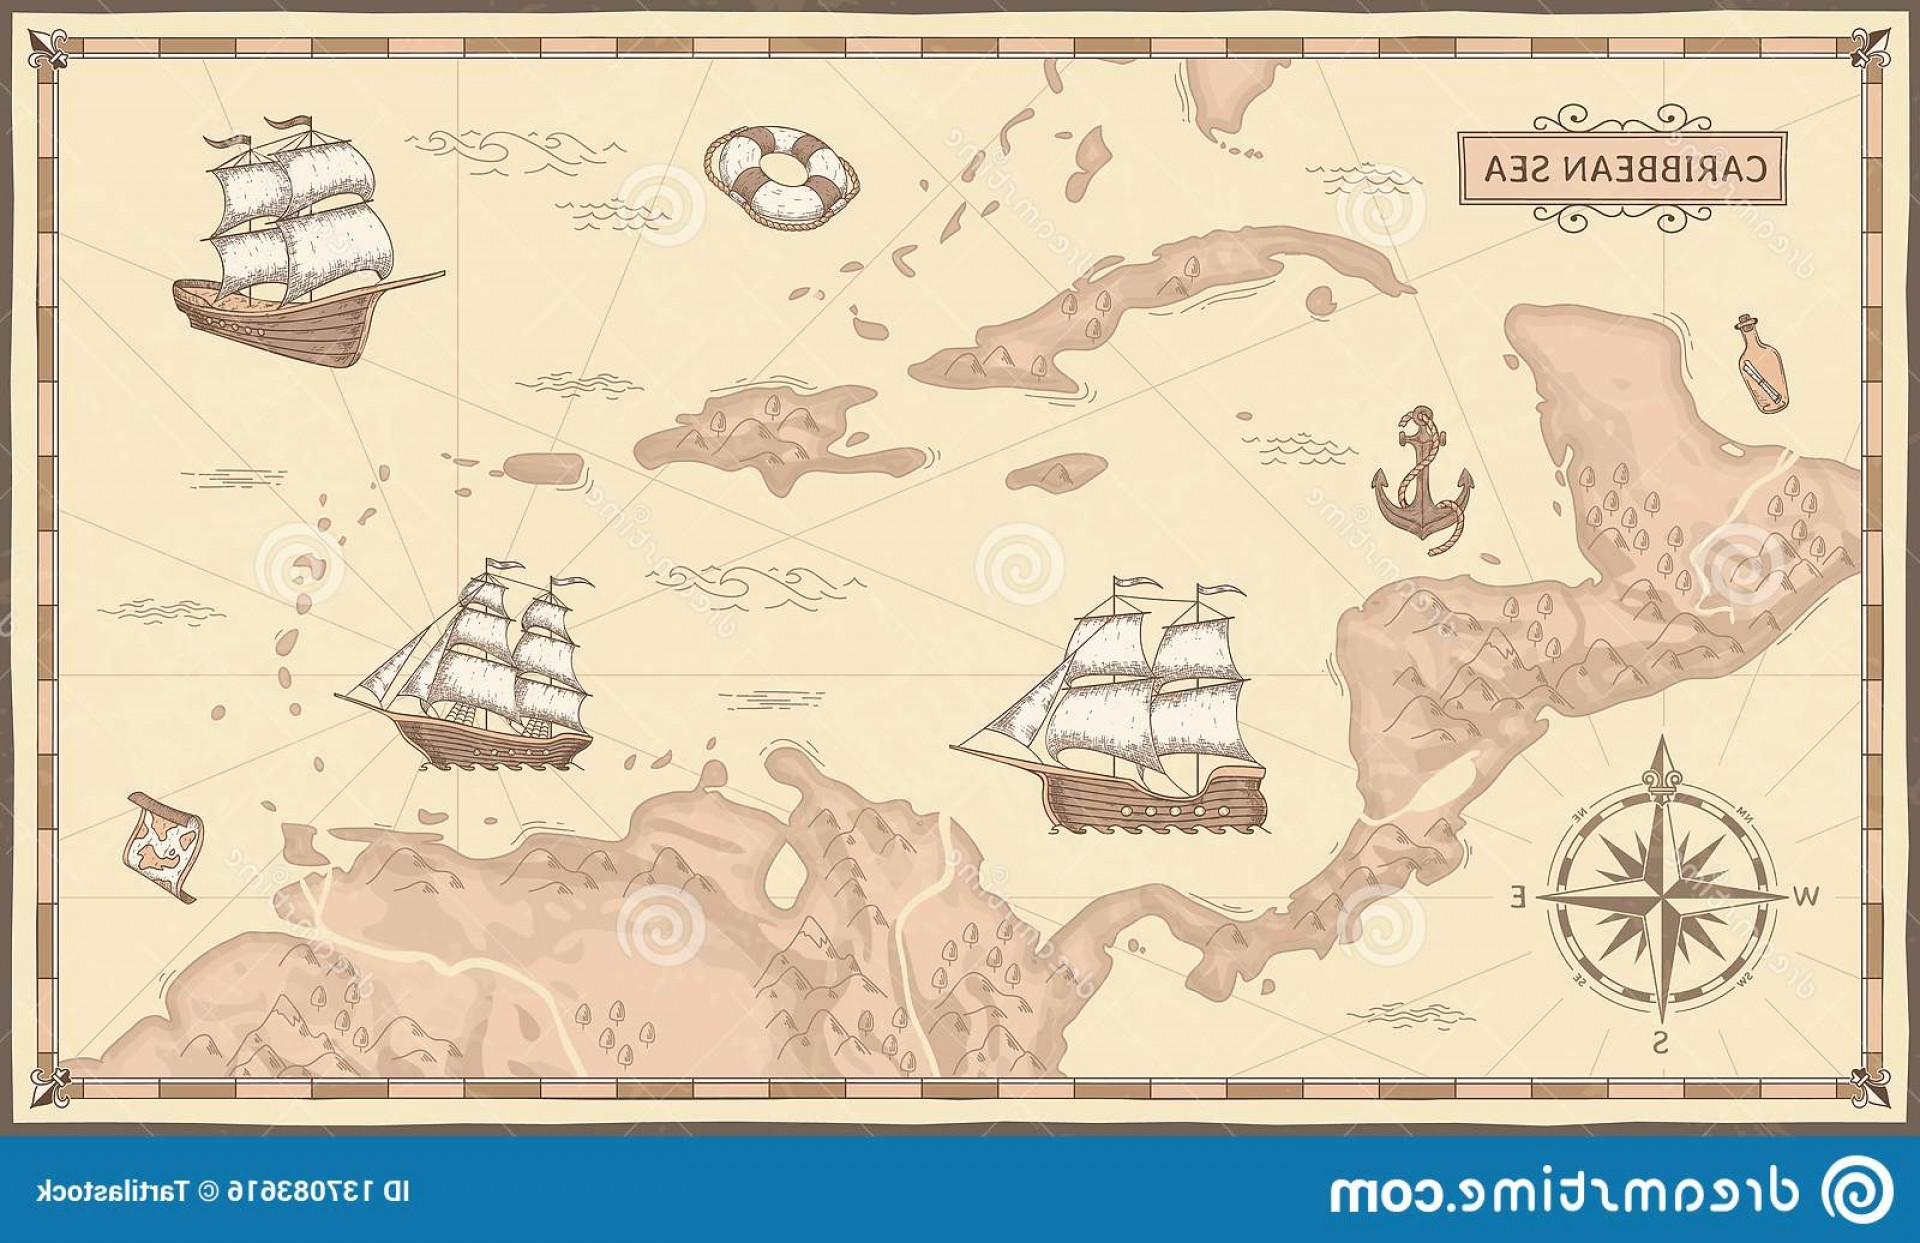 Vintage Map Clipart- Vector: Old Caribbean Sea Map Ancient Pirate Routes Fantasy Pirates Ships Vintage Maps Vector Concept Illustration Marine Nautical Image